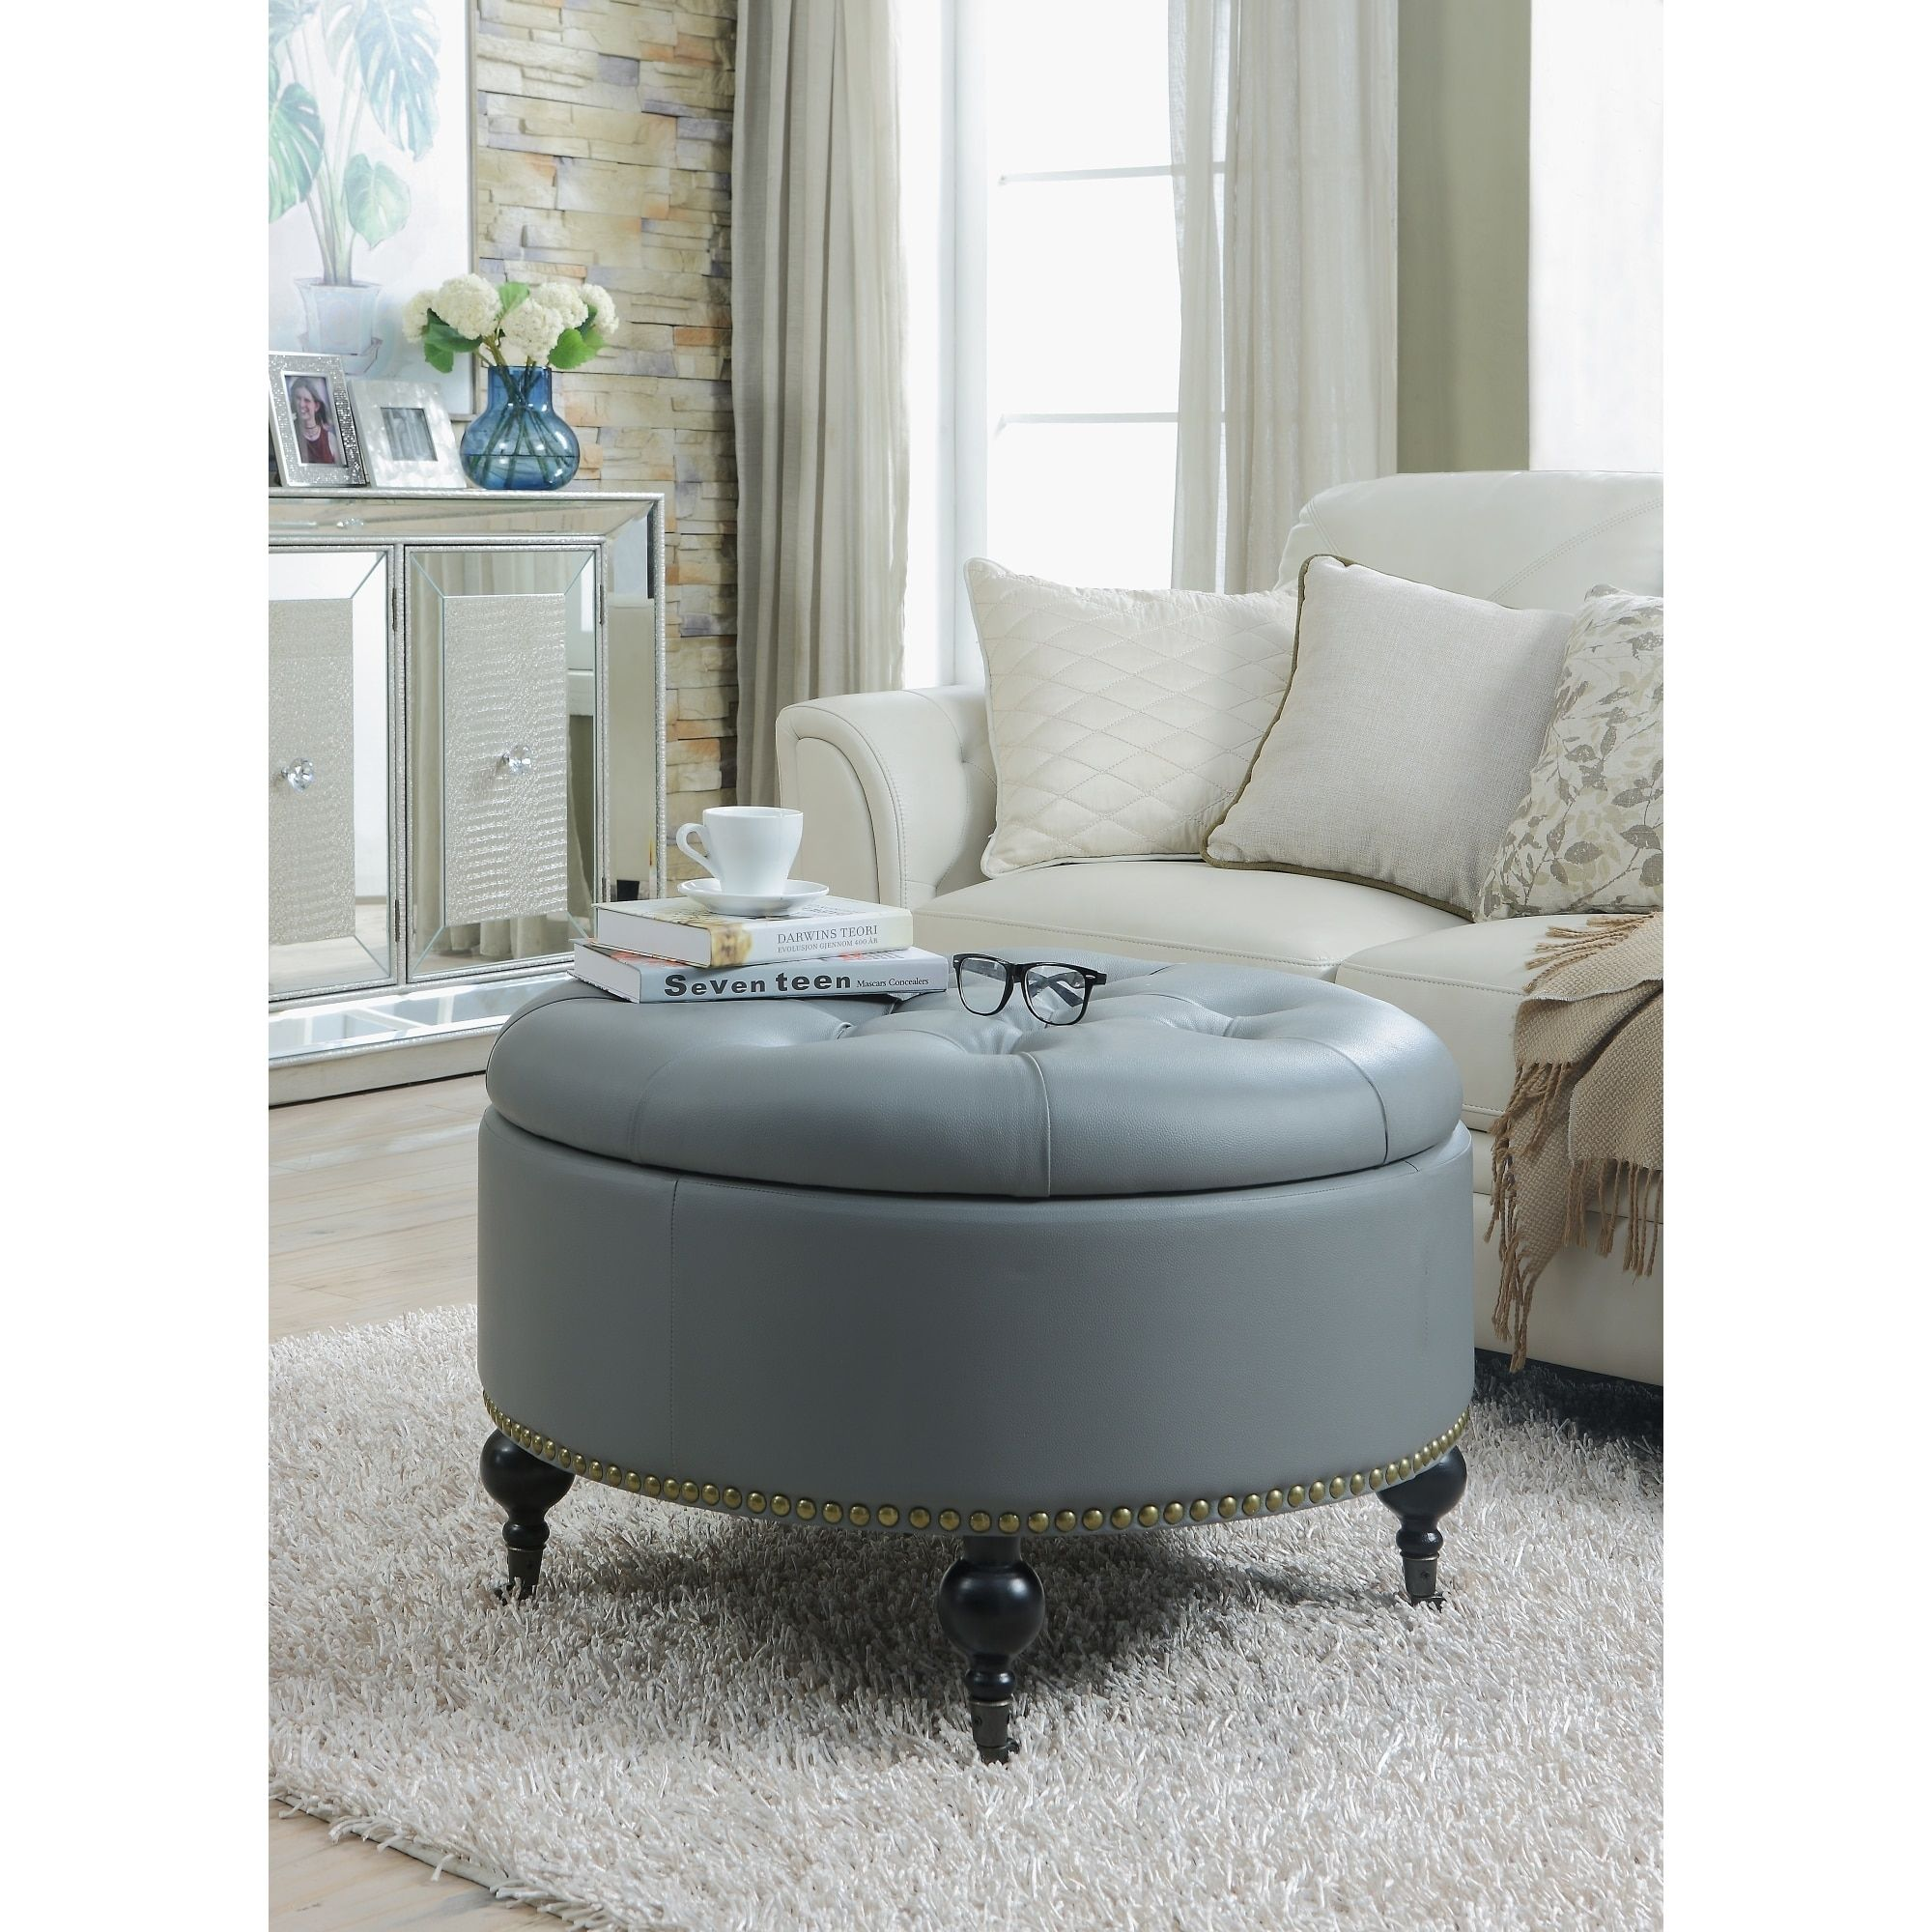 Storage Ottoman,Round Home Goods: Free Shipping On Orders Over $45 At  Overstock.